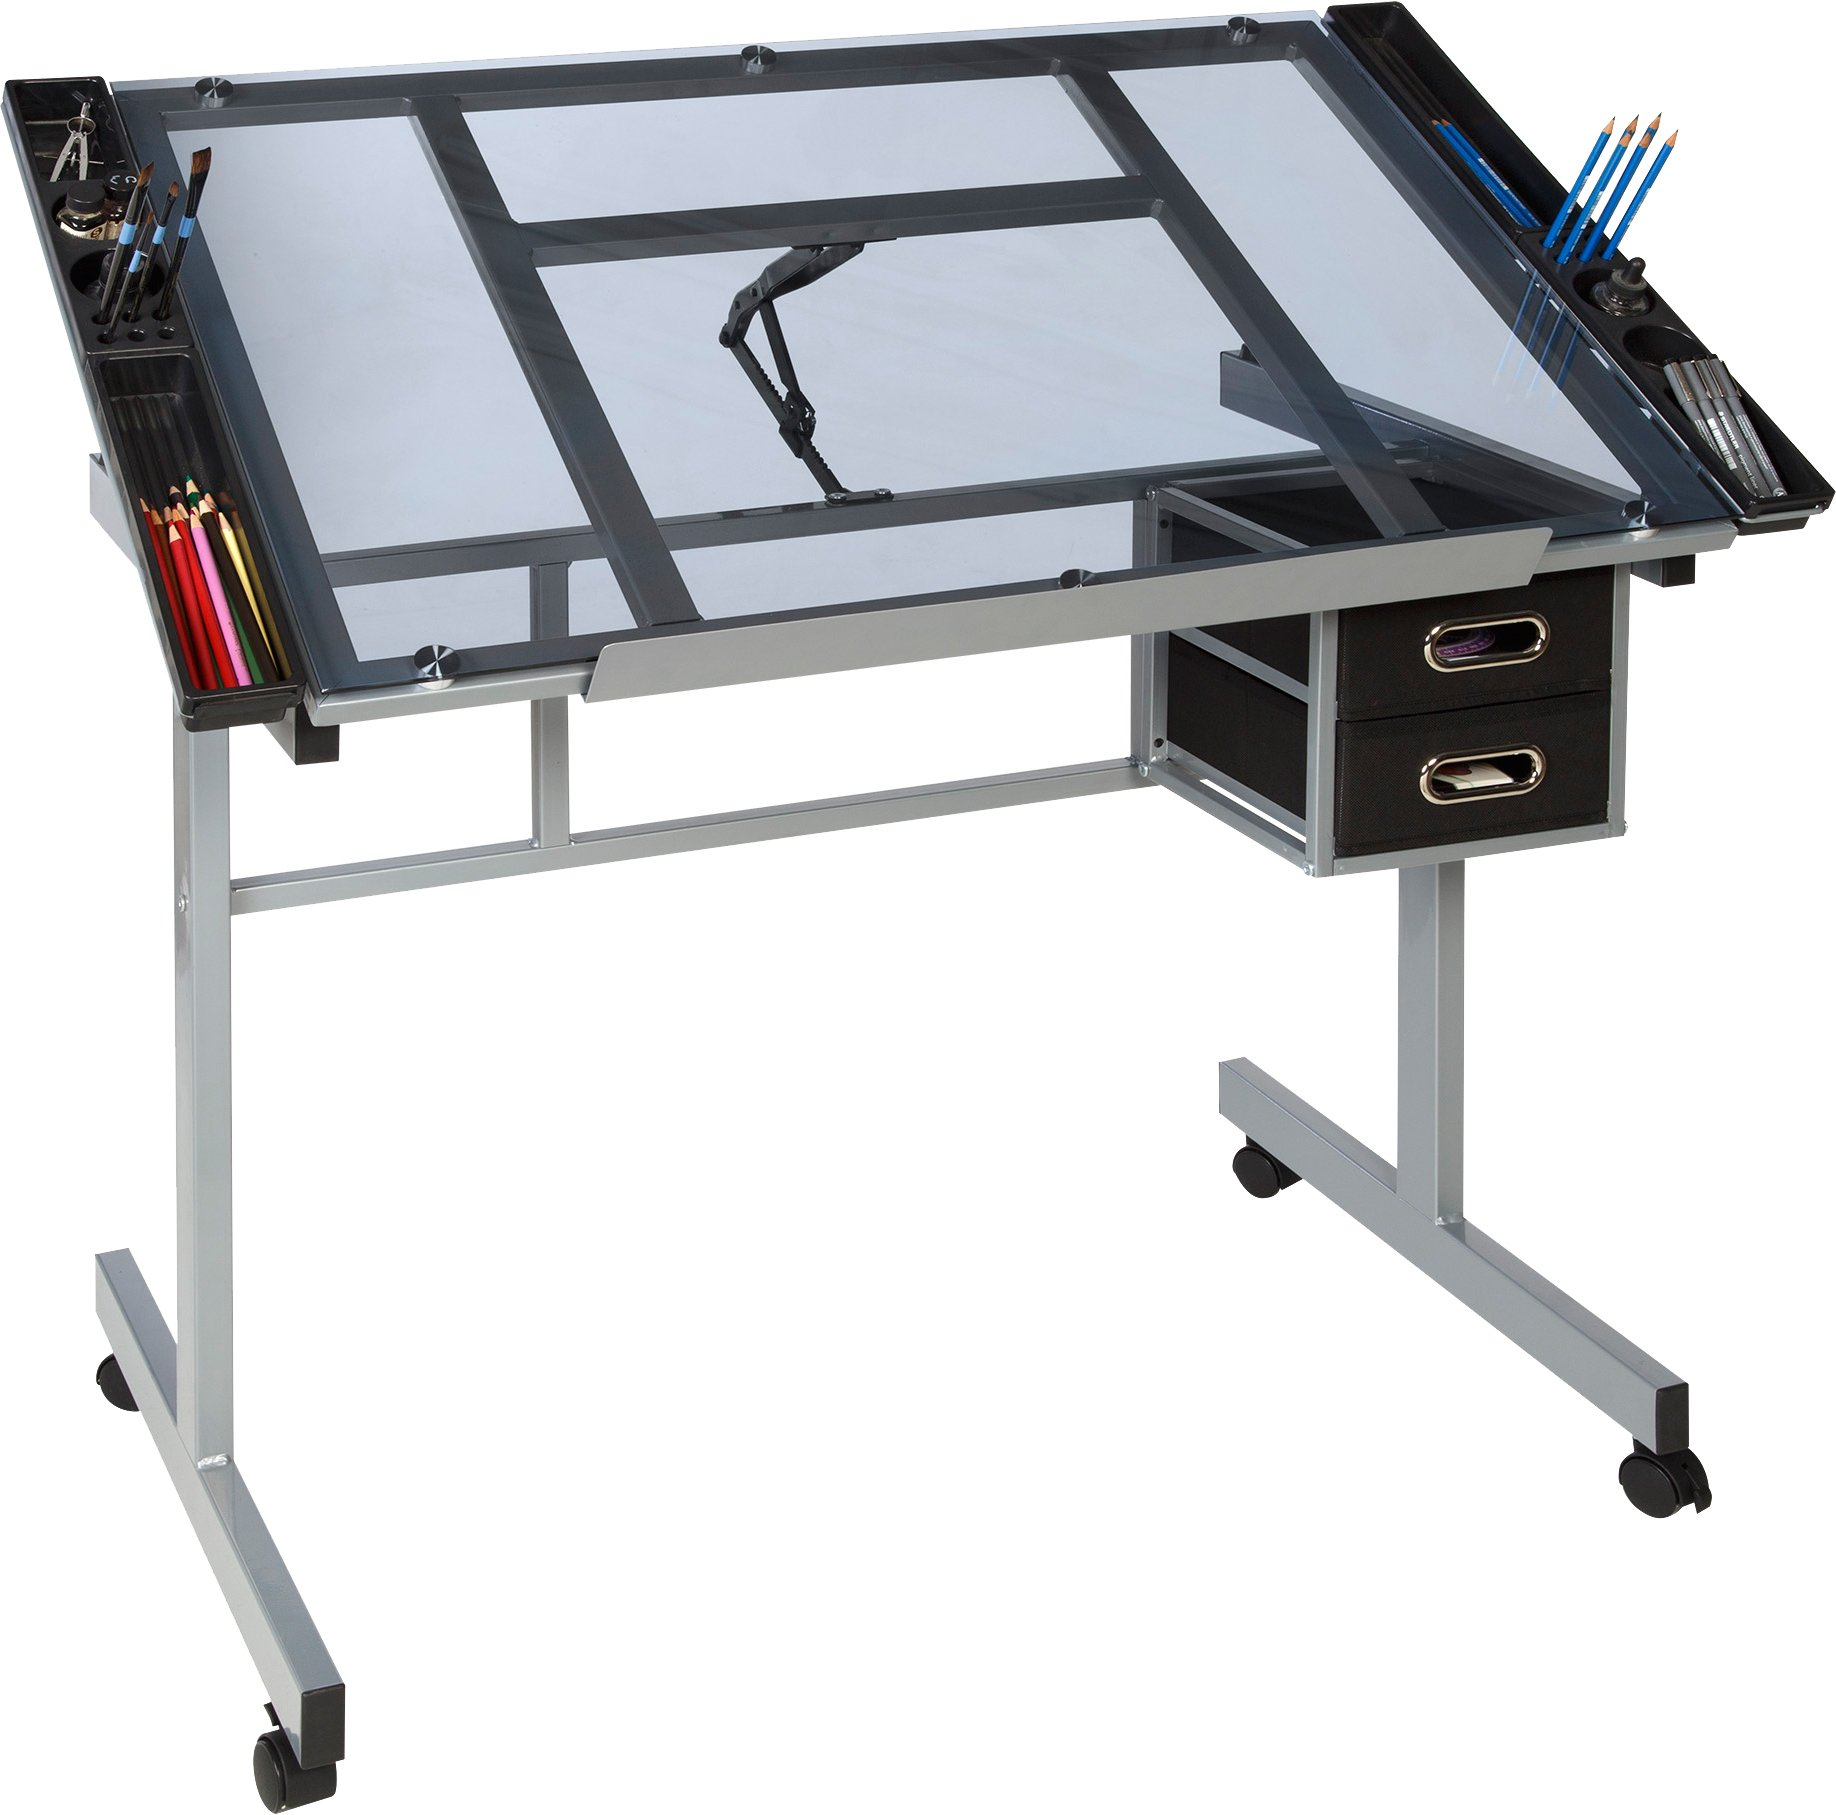 OneSpace 50-CS01 Craft Station, Silver with Blue Glass by OneSpace